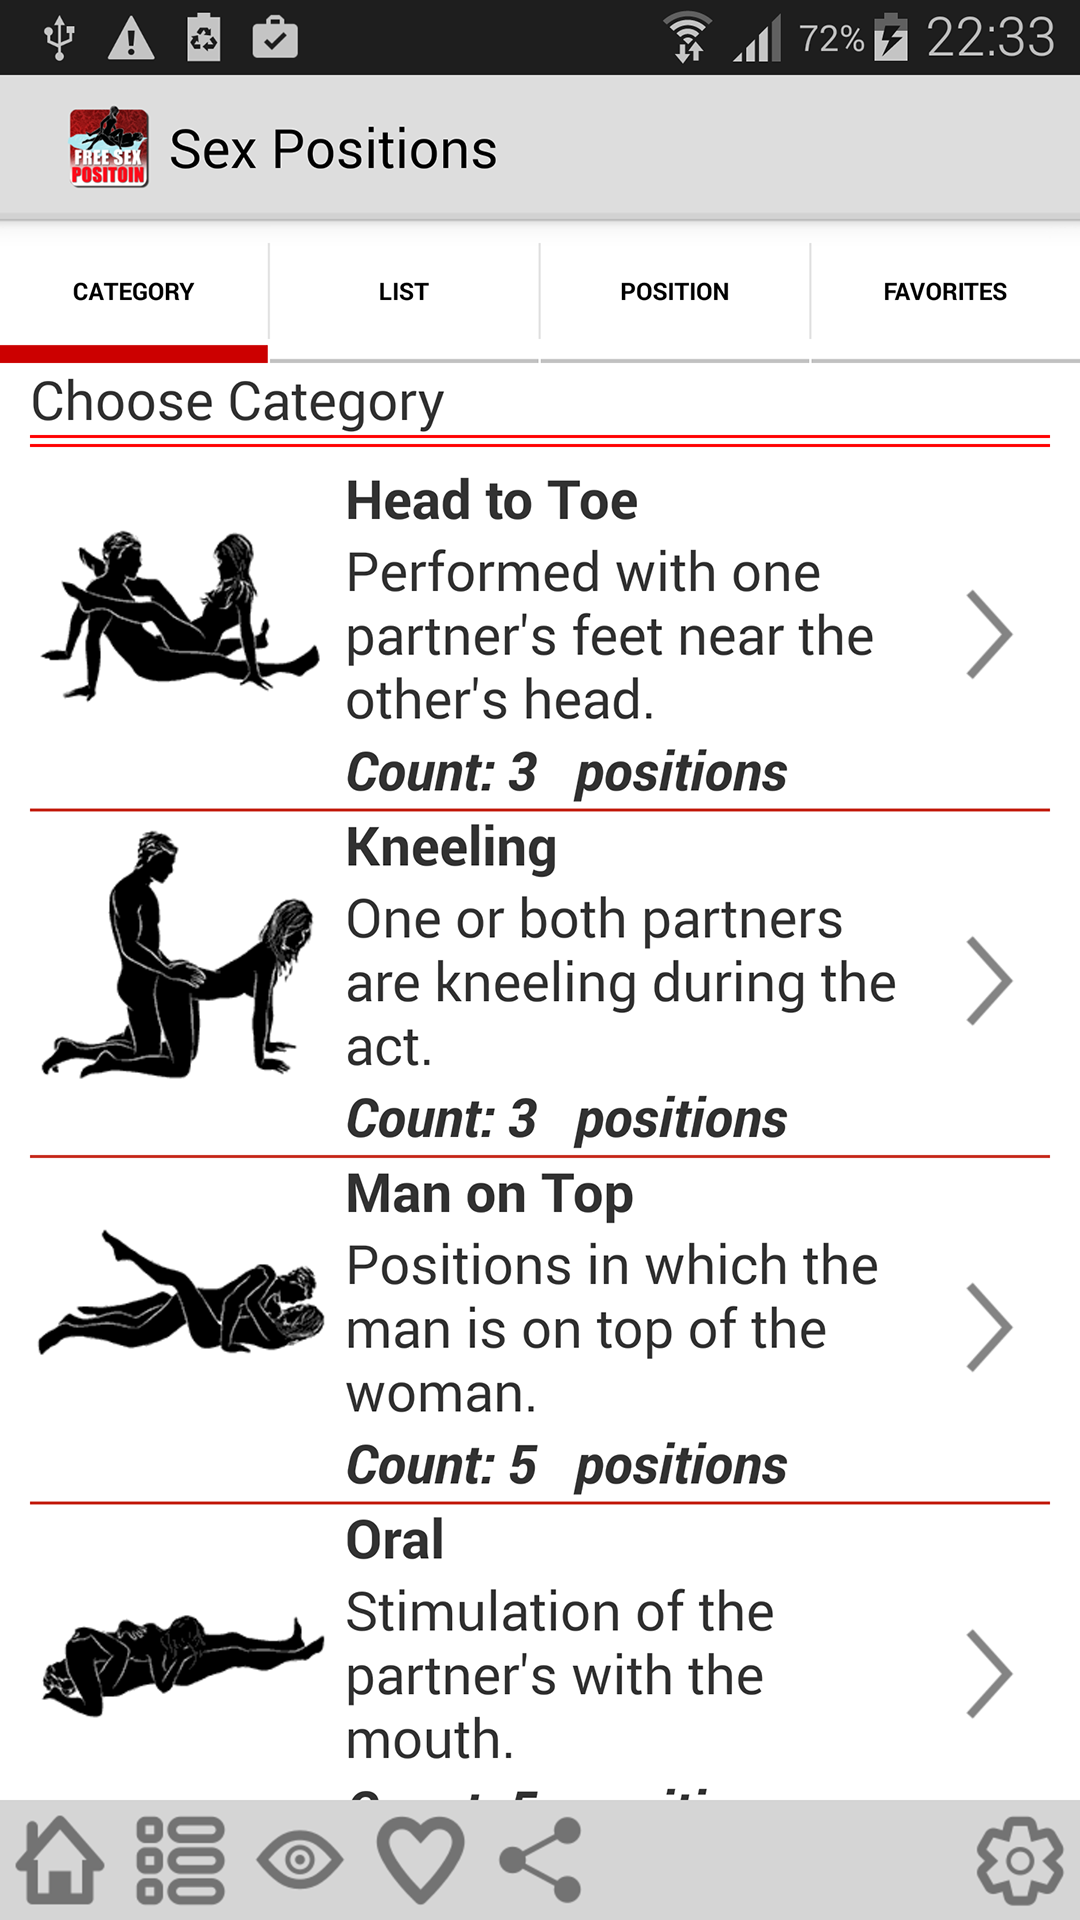 What are some different sex positions